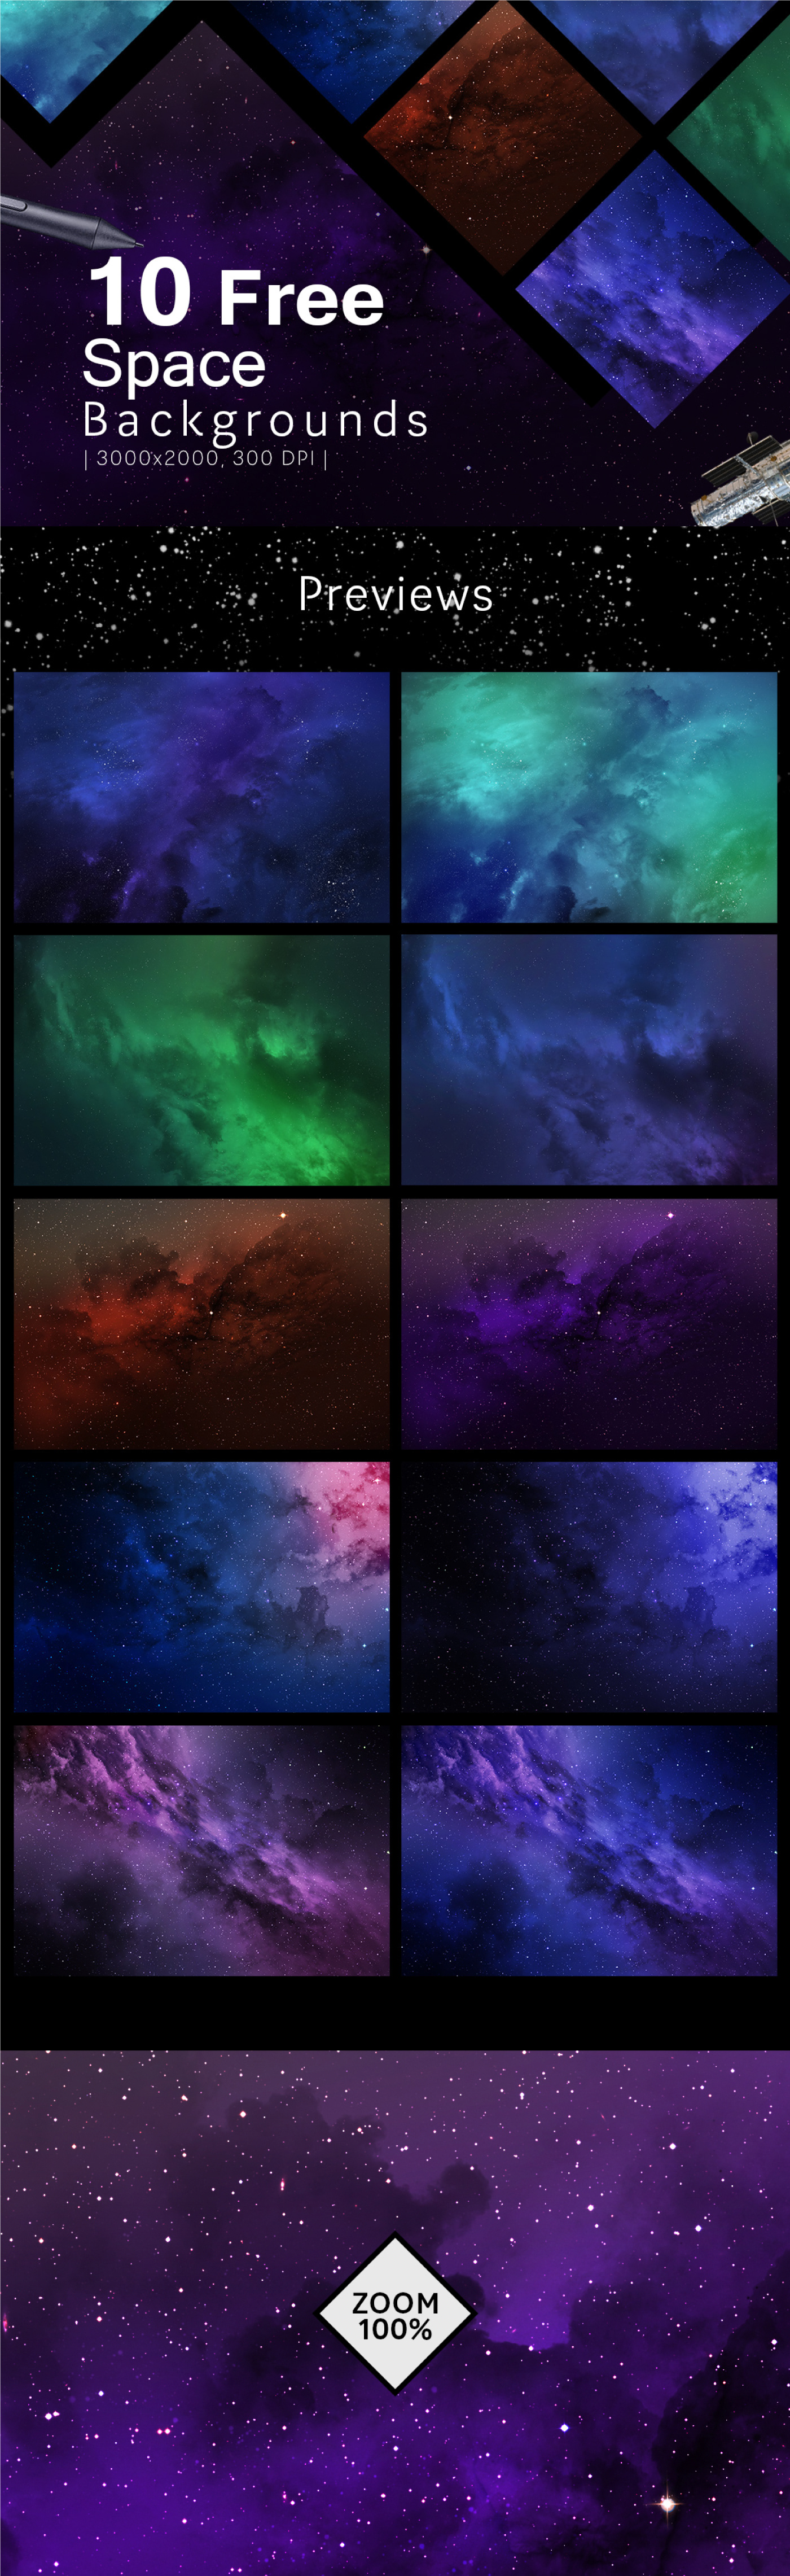 free Free Background texture free texture Space  cosmic textured background SPACE BACKGROUND freebie background pack